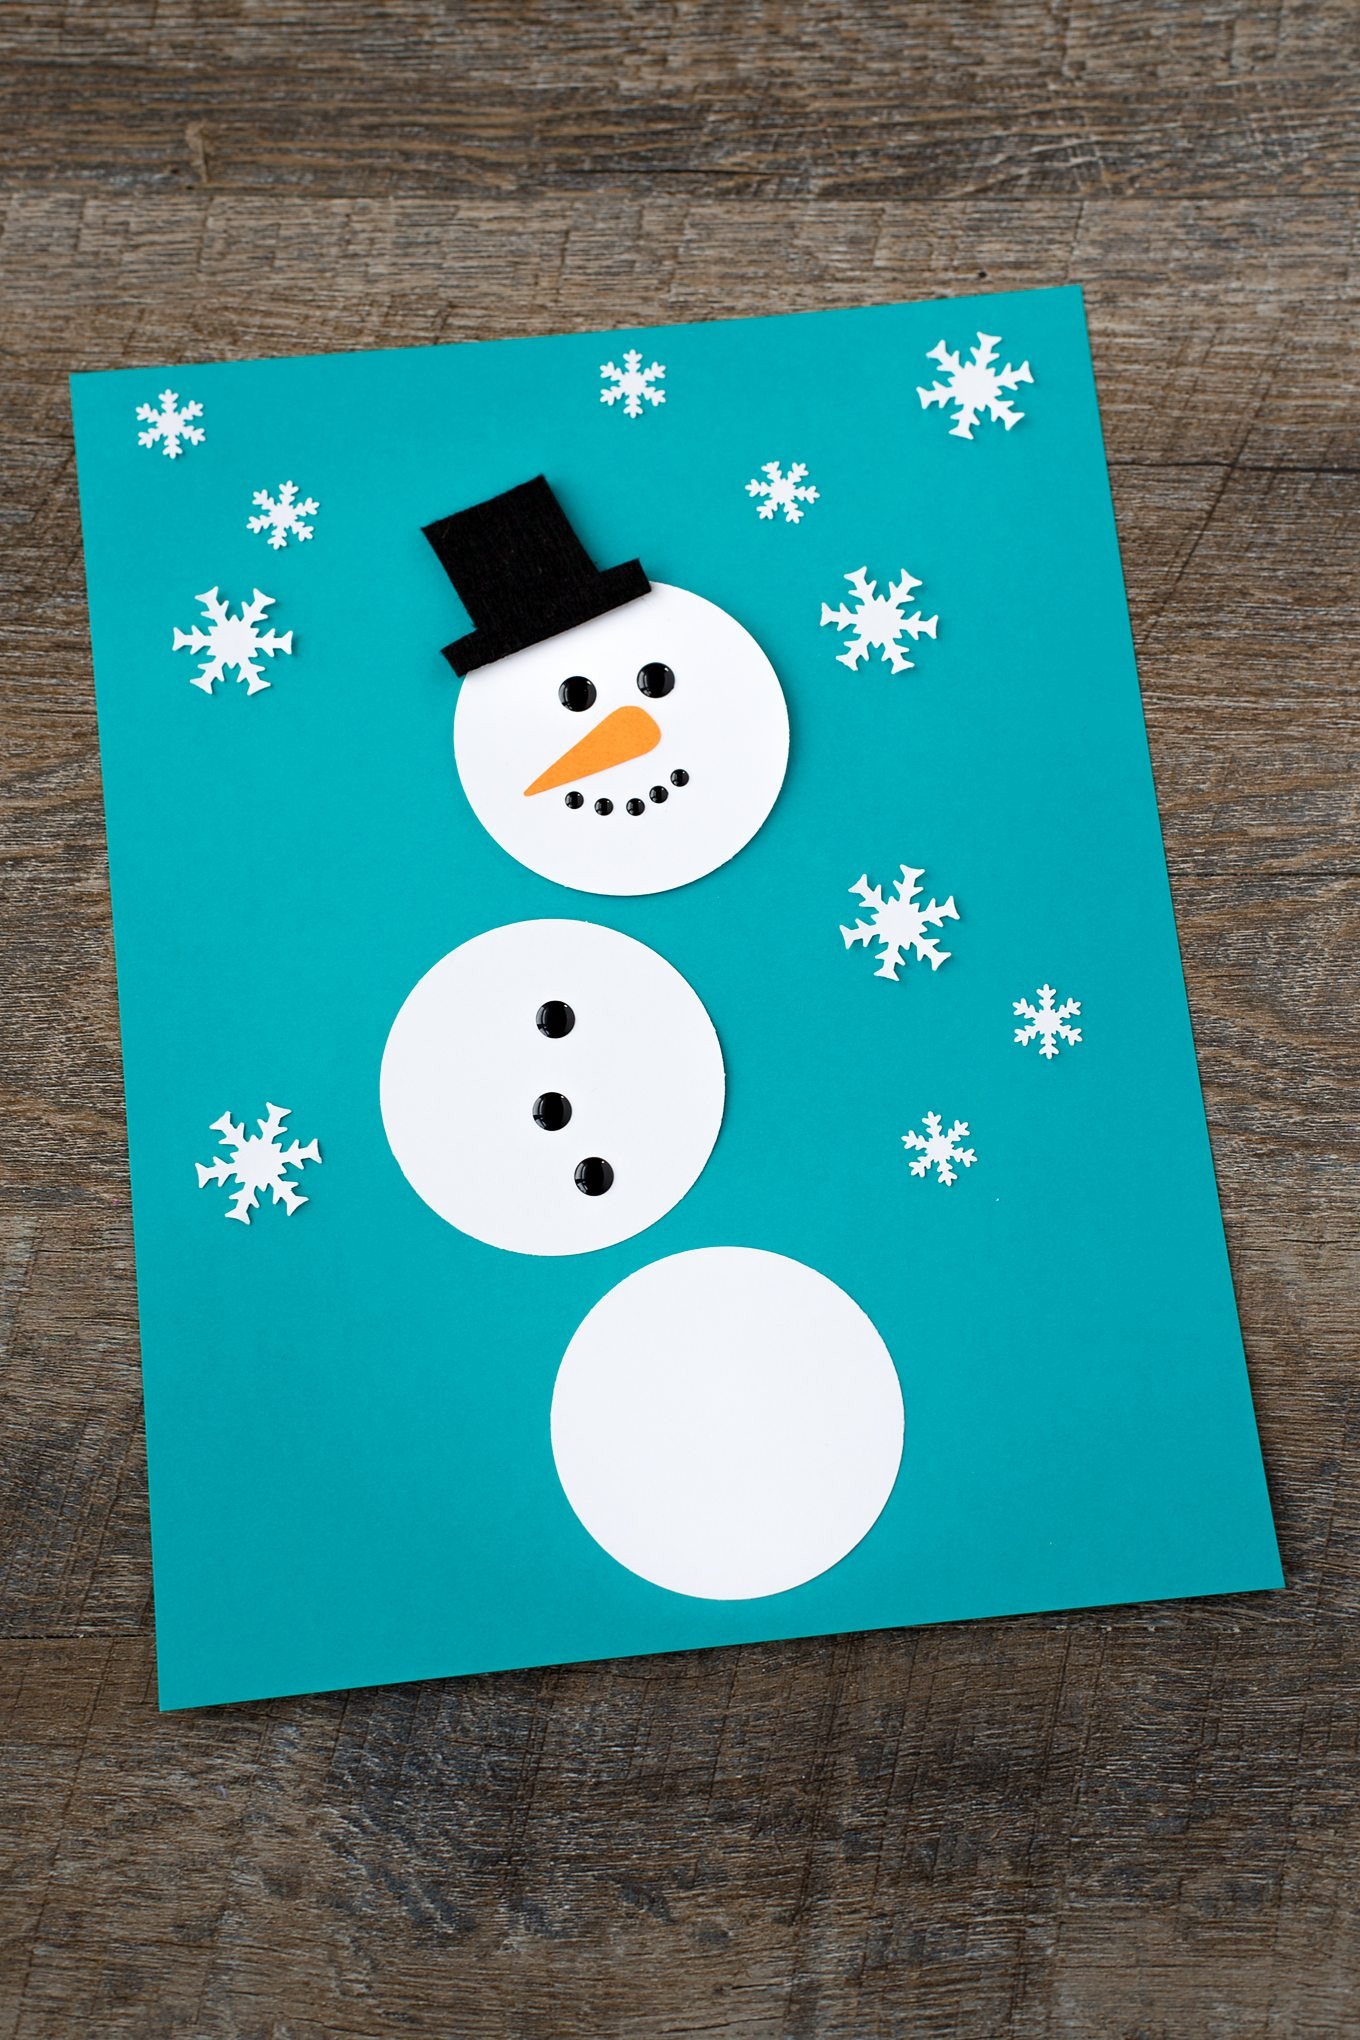 Best ideas about Winter-Crafts-For-Kids At Home . Save or Pin The Happiest Paper Snowman Craft for Kids Now.